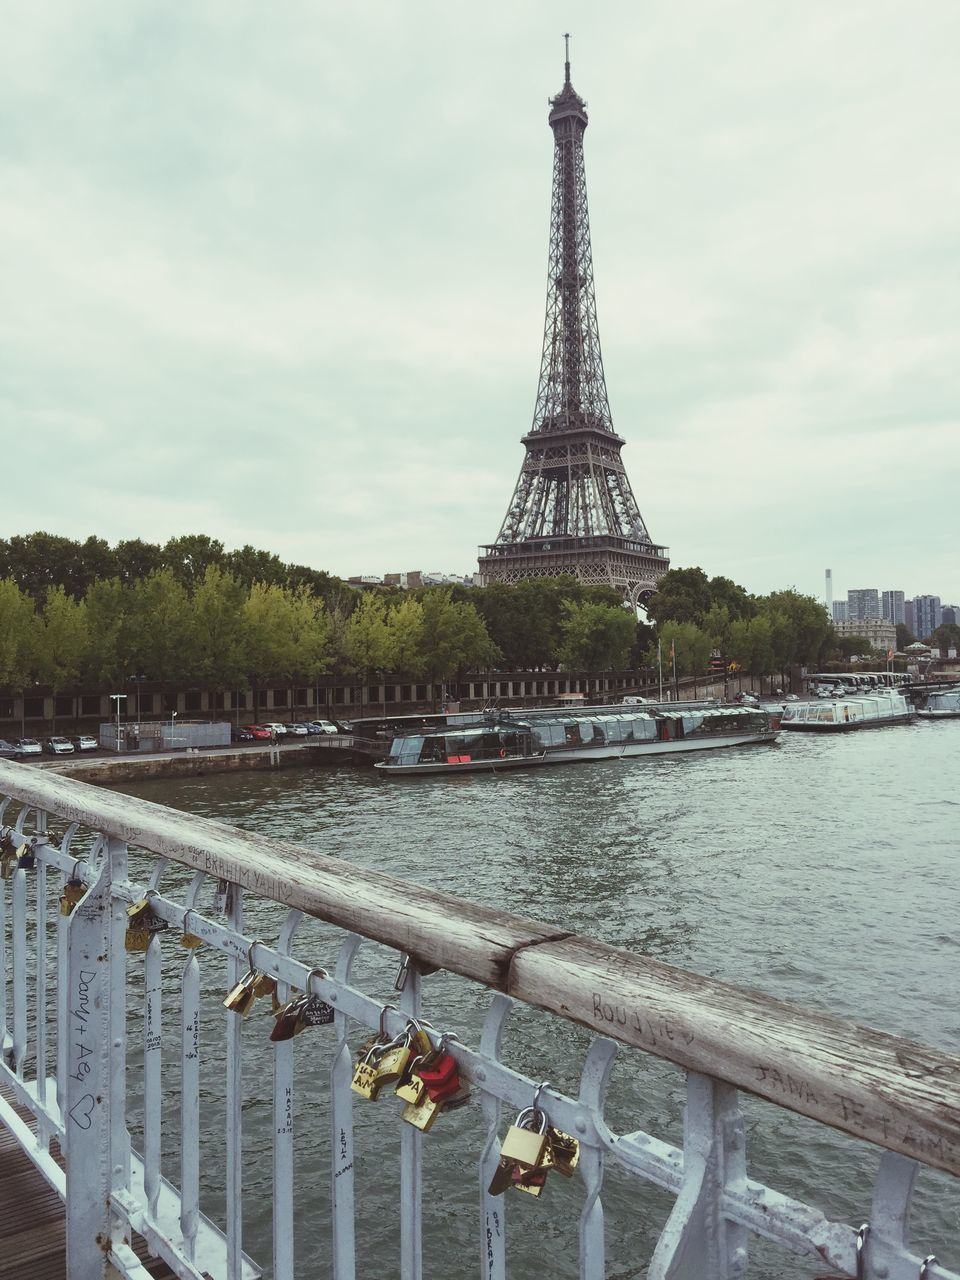 architecture, padlock, built structure, railing, travel destinations, metal, water, sky, tower, love lock, outdoors, day, river, lock, bridge - man made structure, protection, no people, building exterior, cloud - sky, city, tree, nature